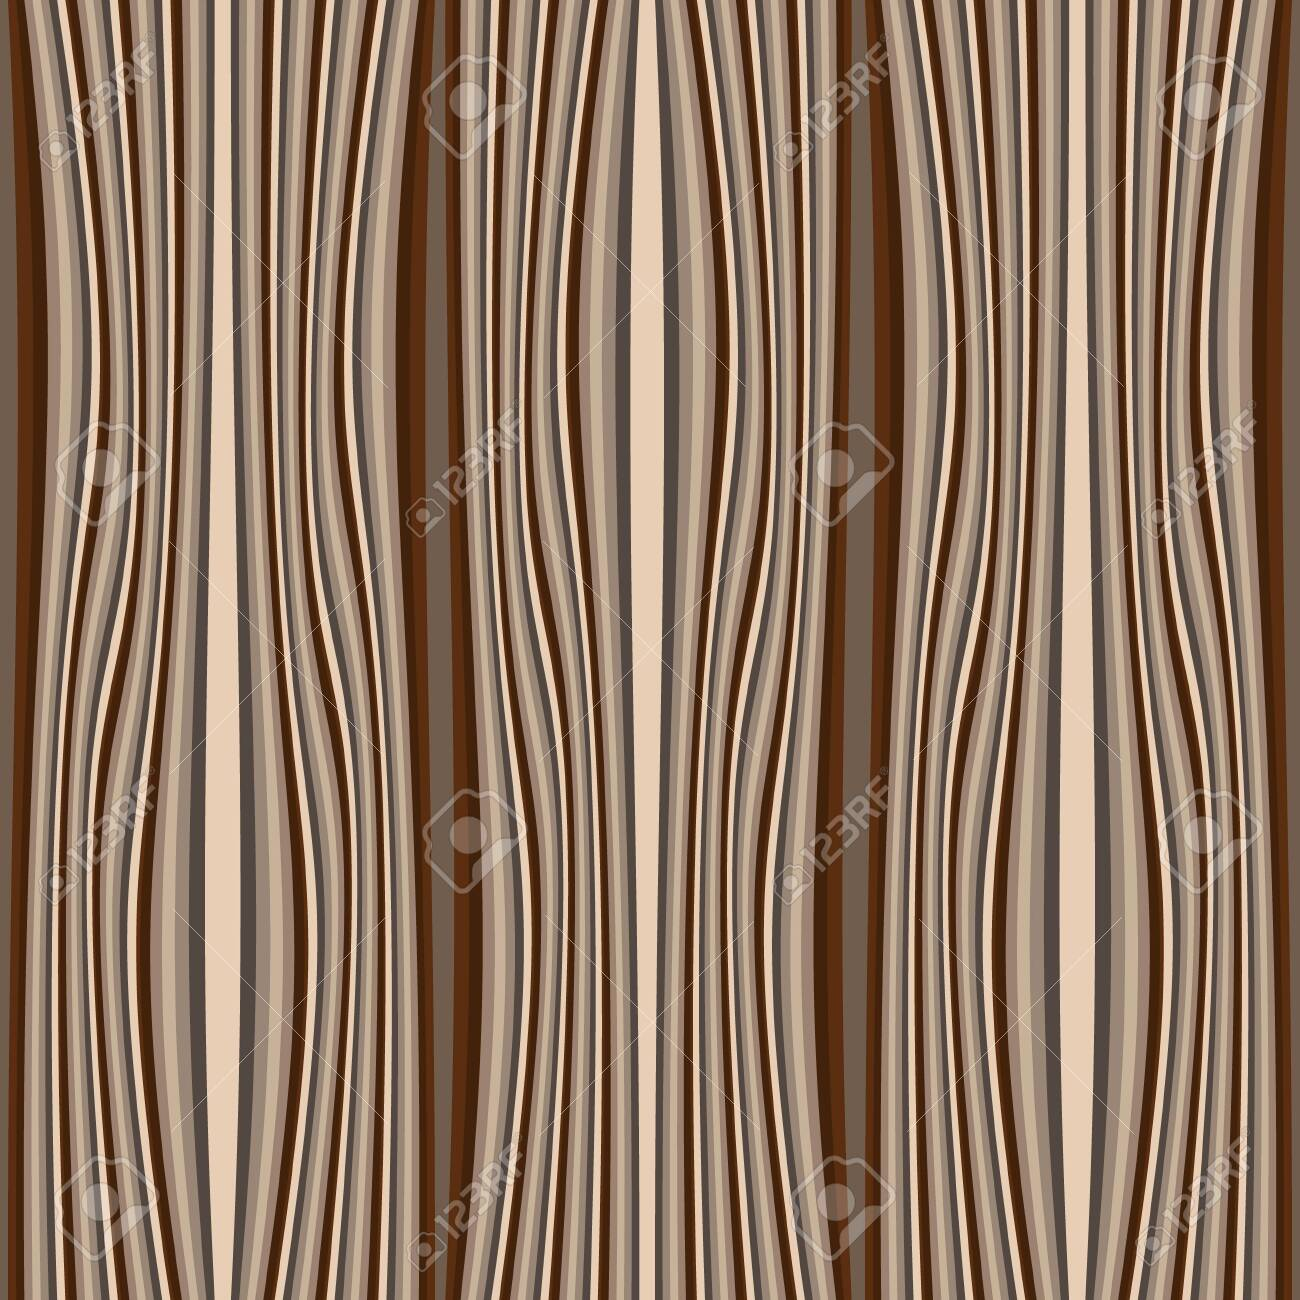 Timber textured vector seamless pattern. Wave lines wooden background. Repeat striped backdrop. Decorative patterned design. Ornate modern ornament. Vertical stripes, waves. Material. Endless texture - 148268813